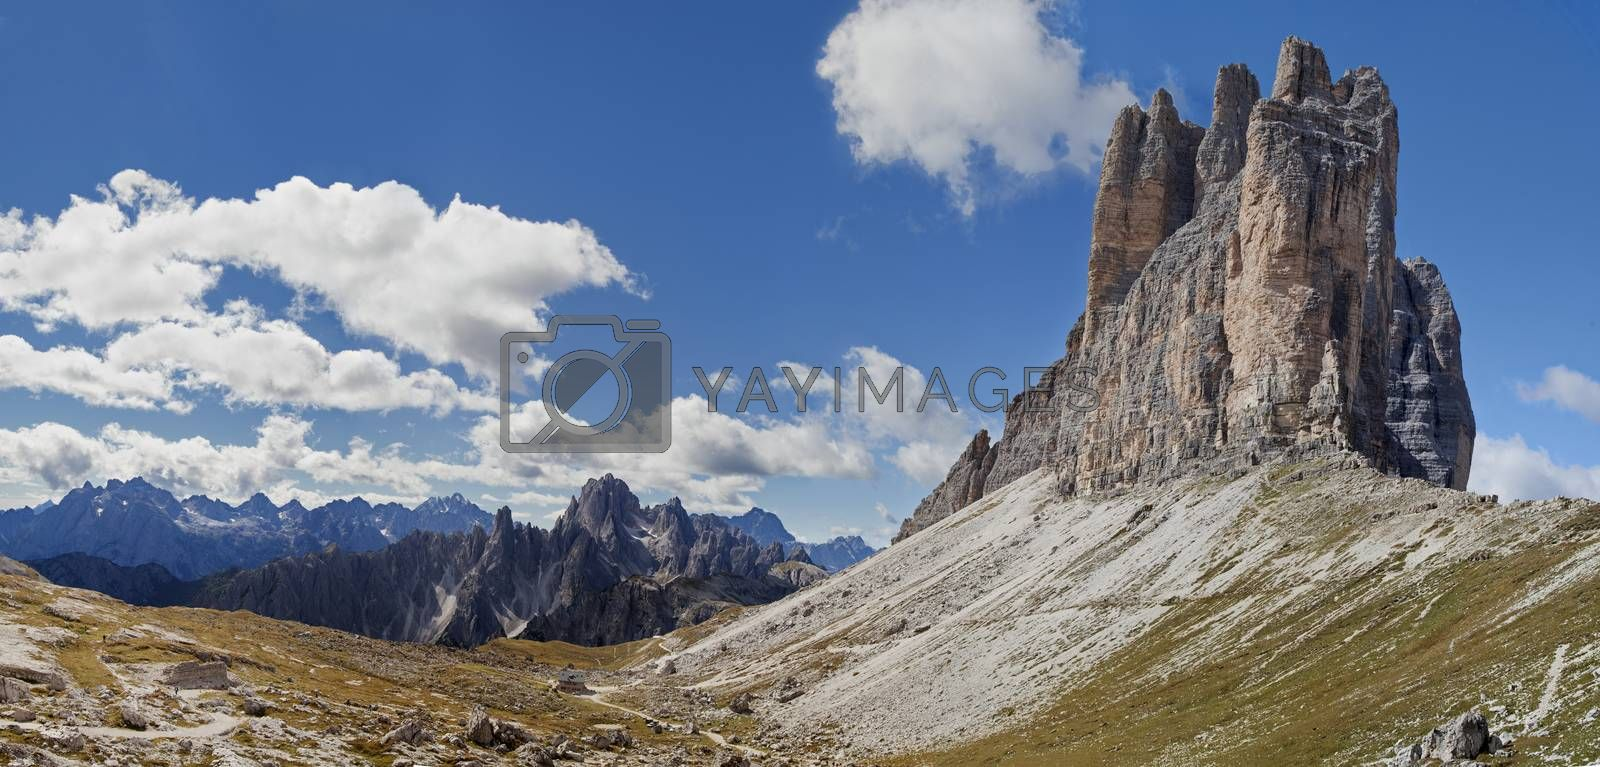 Dolomites mountains landscape on a sunny autumn day